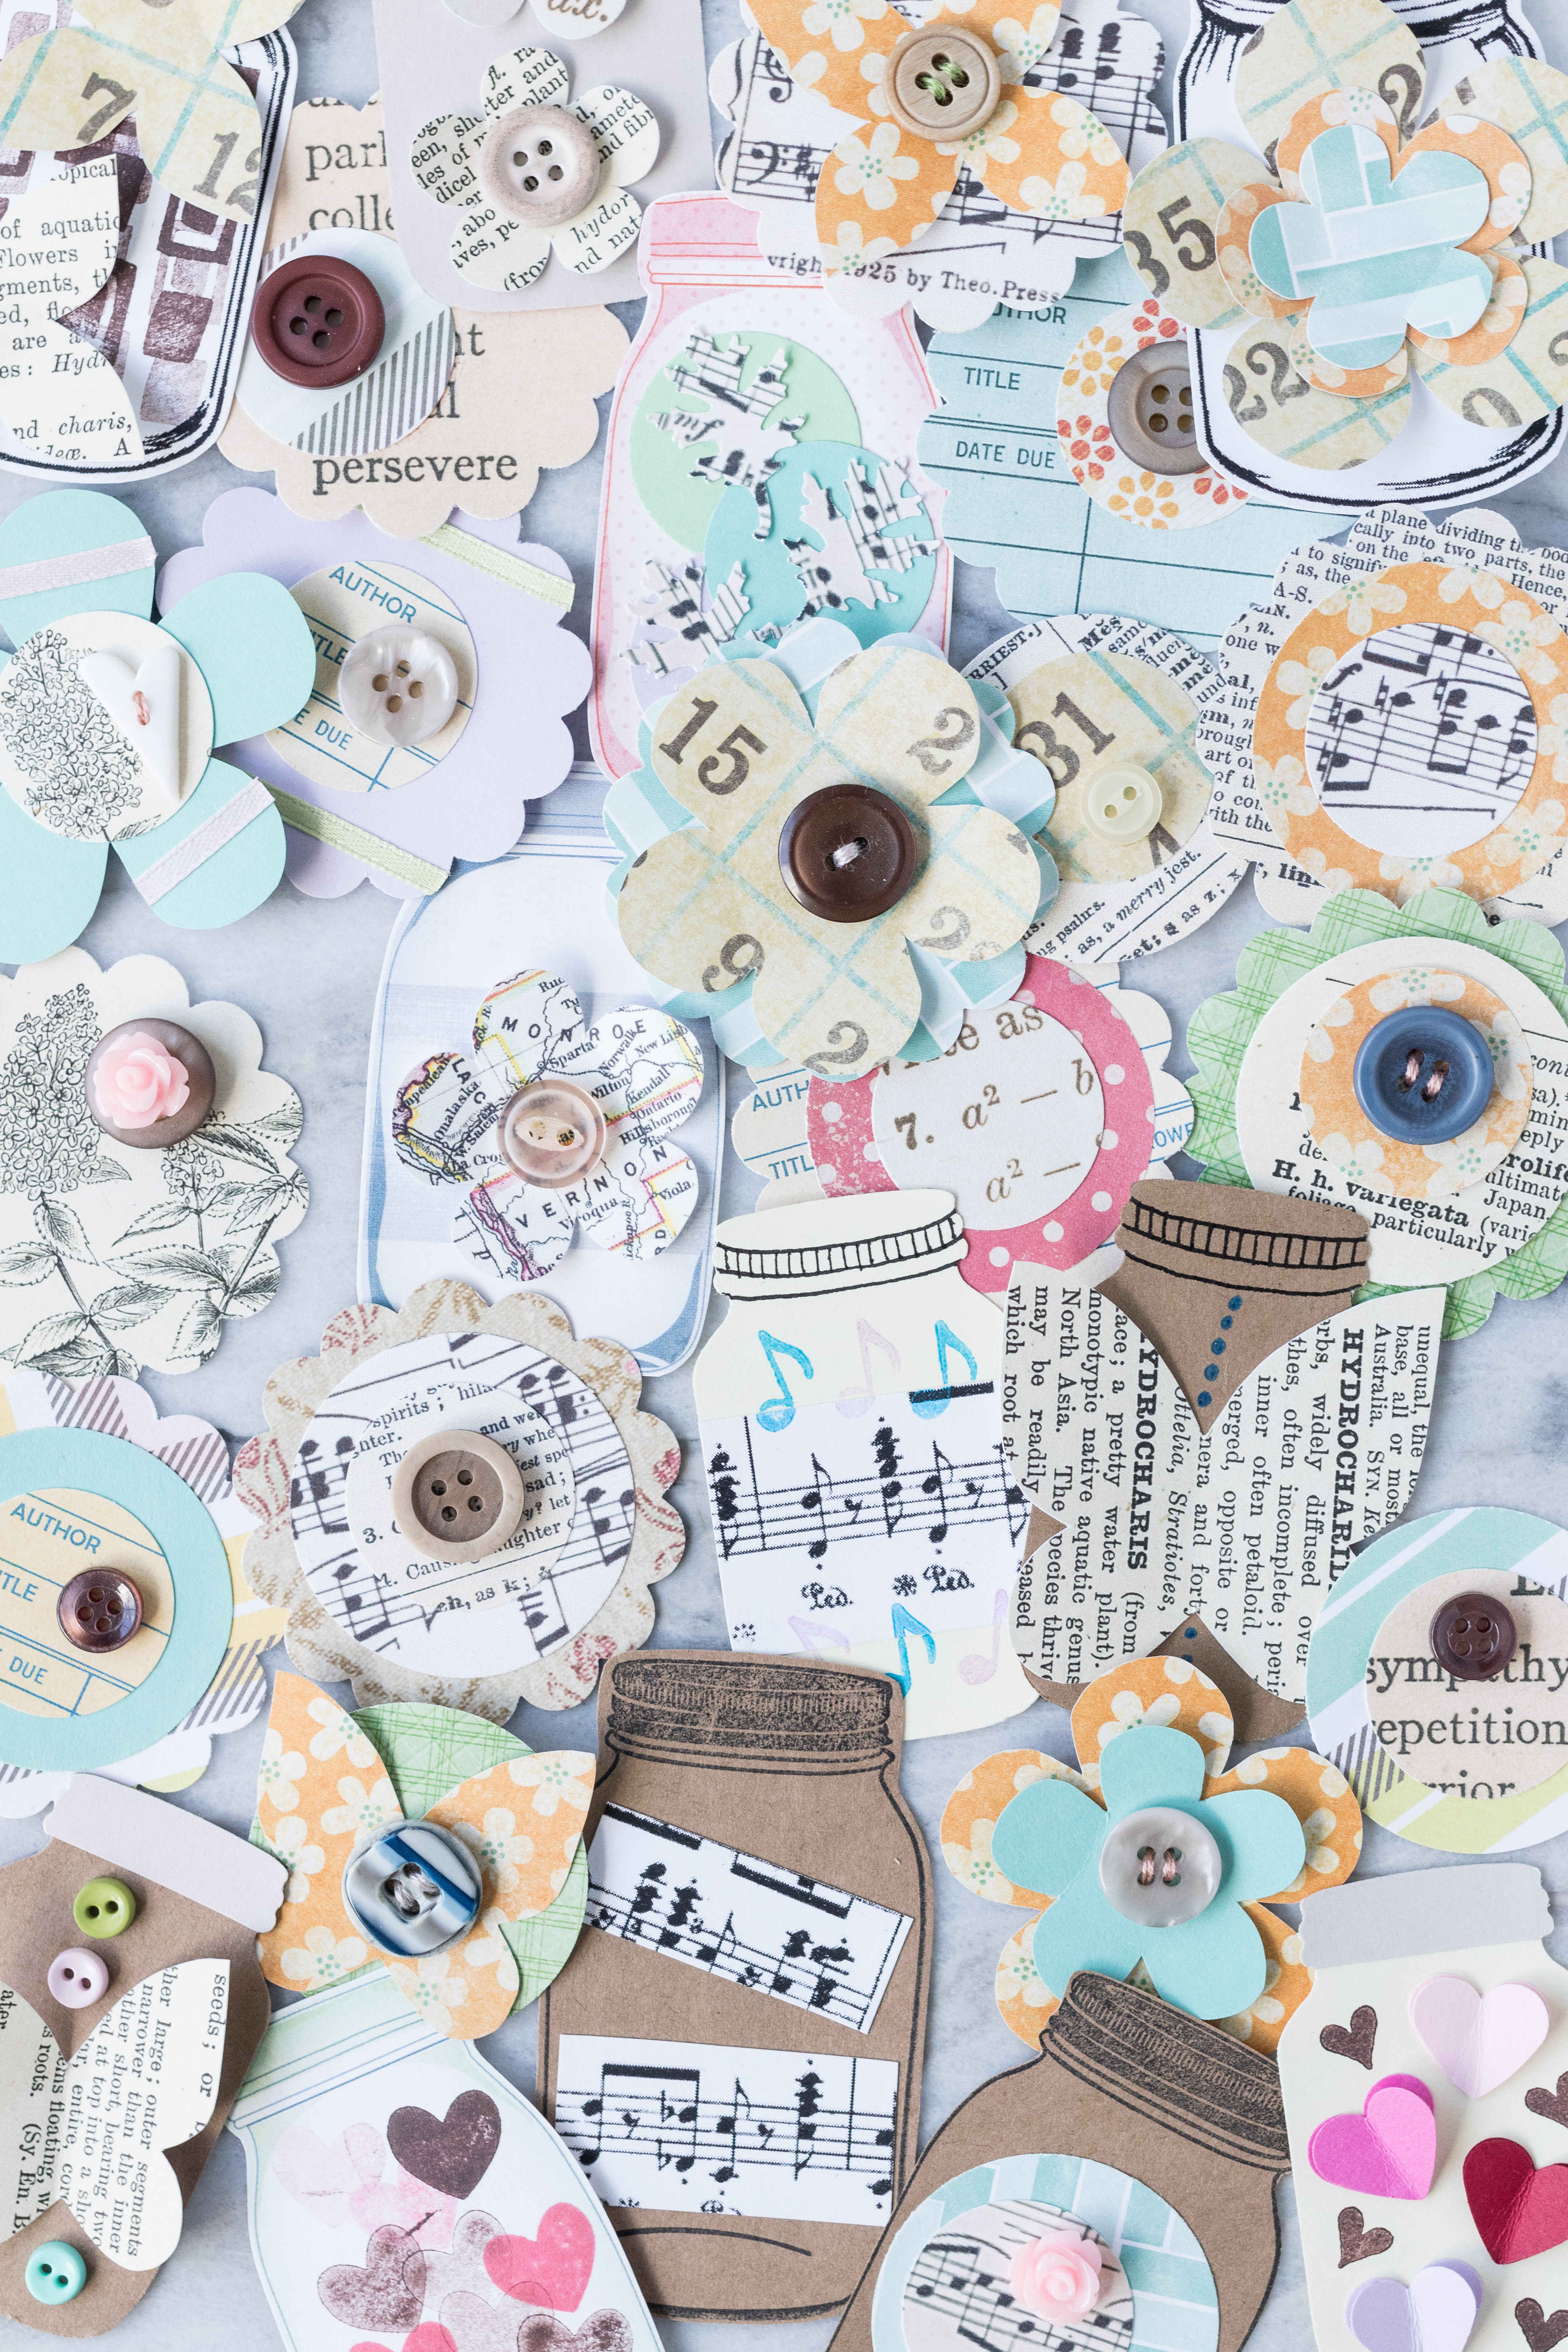 Learn how to make your own scrapbook embellishments! DIY embellishments add a personal touch to scrapbook layouts as well as cards, gift tags, wrapping paper, junk journals, and much more! #DIY #scrapbooking #scrapbookembellishments | https://www.roseclearfield.com